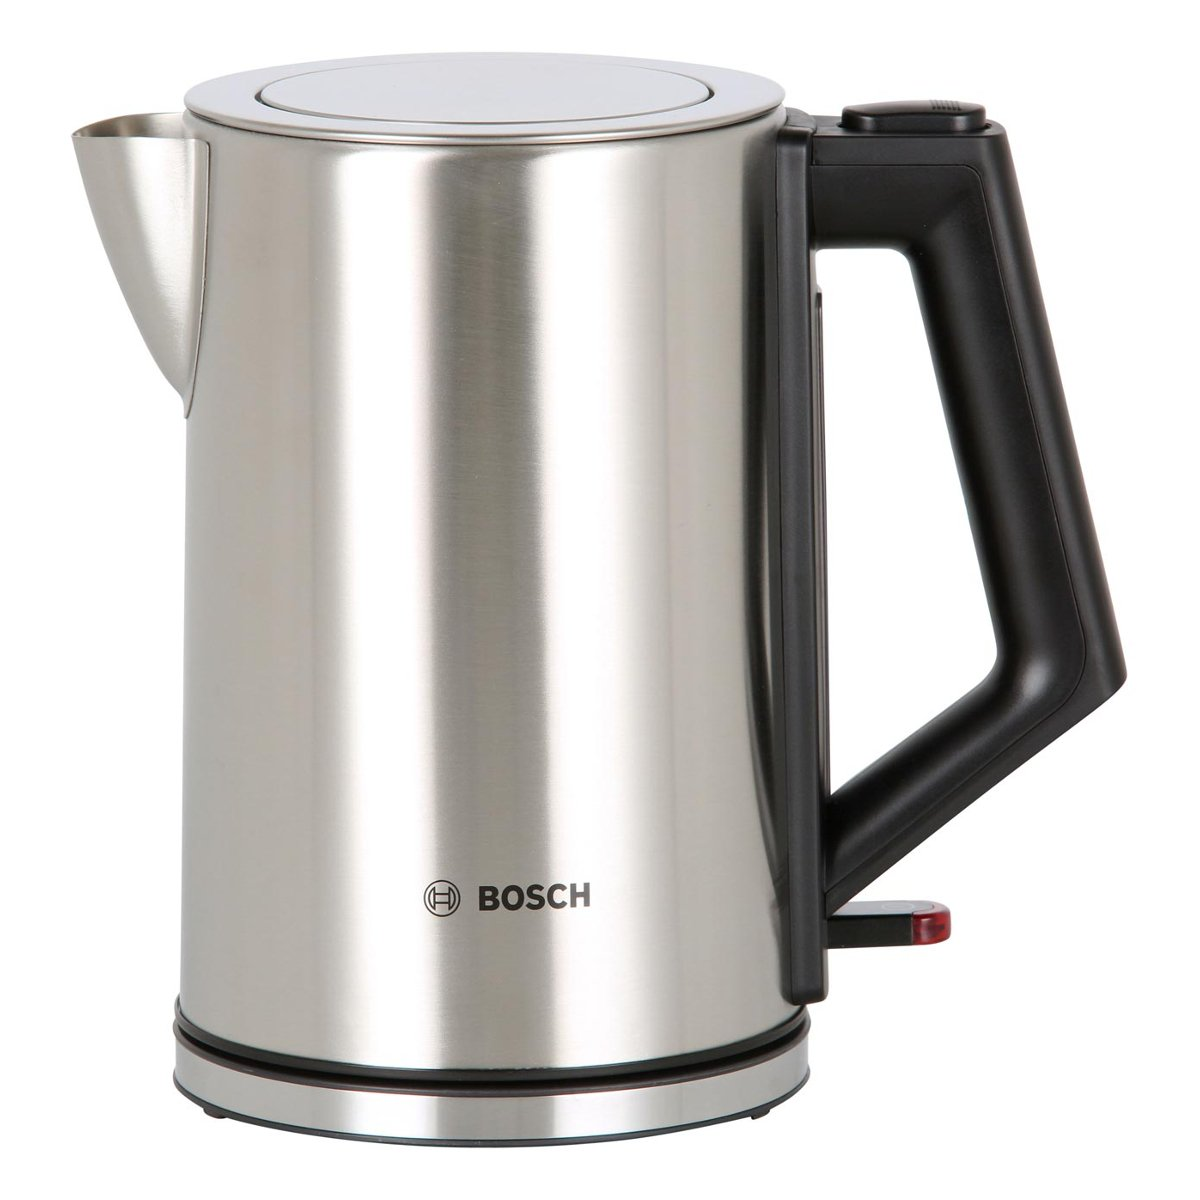 BOSCH TWK7101GB City Kettle, 1.7 Litre, 3000 W, Stainless Steel BSH Home Appliances